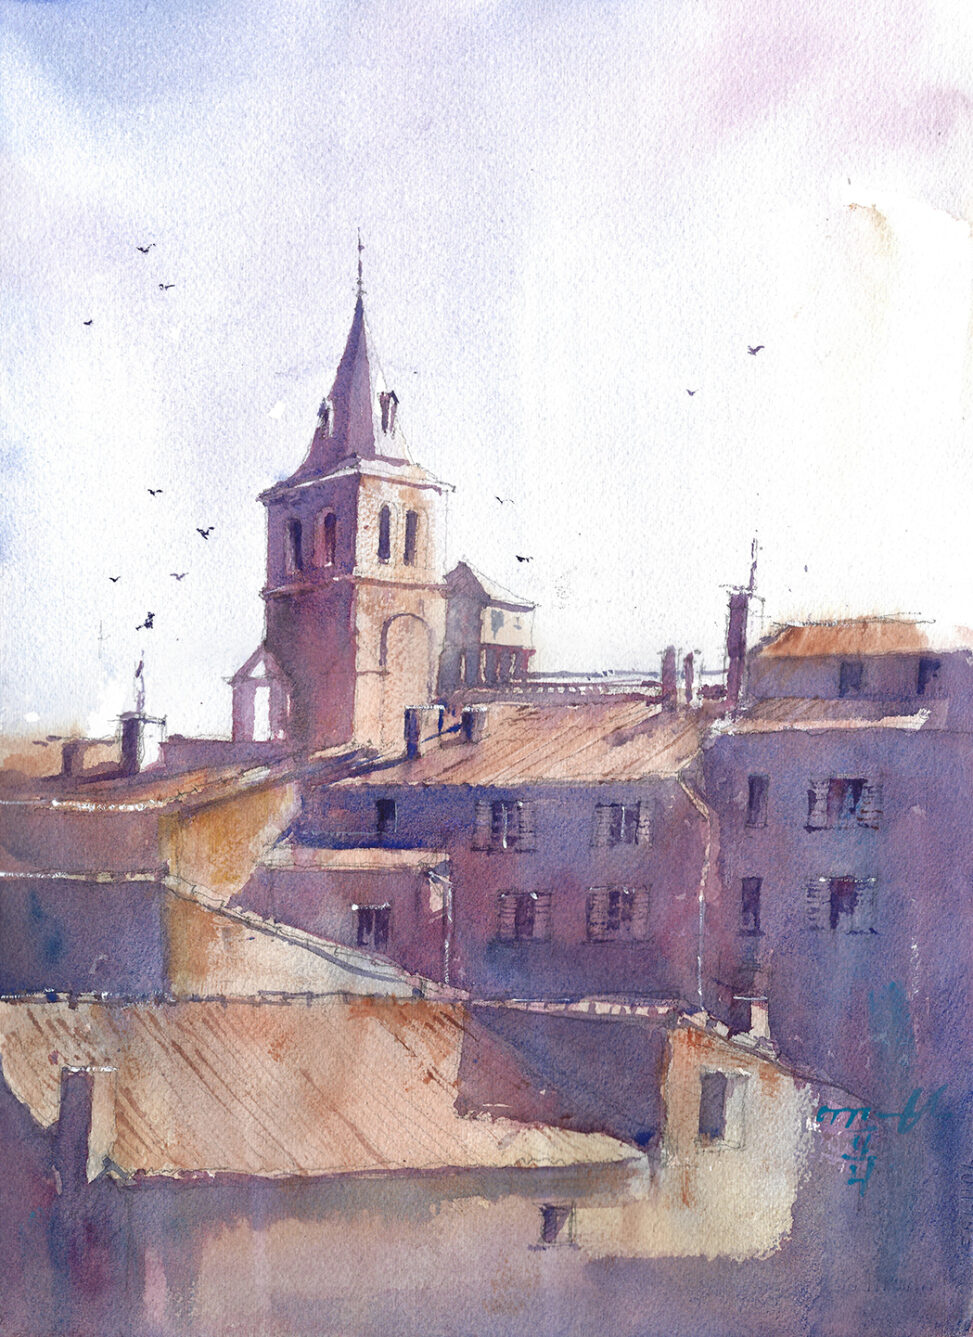 Watercolor Painting of France Village